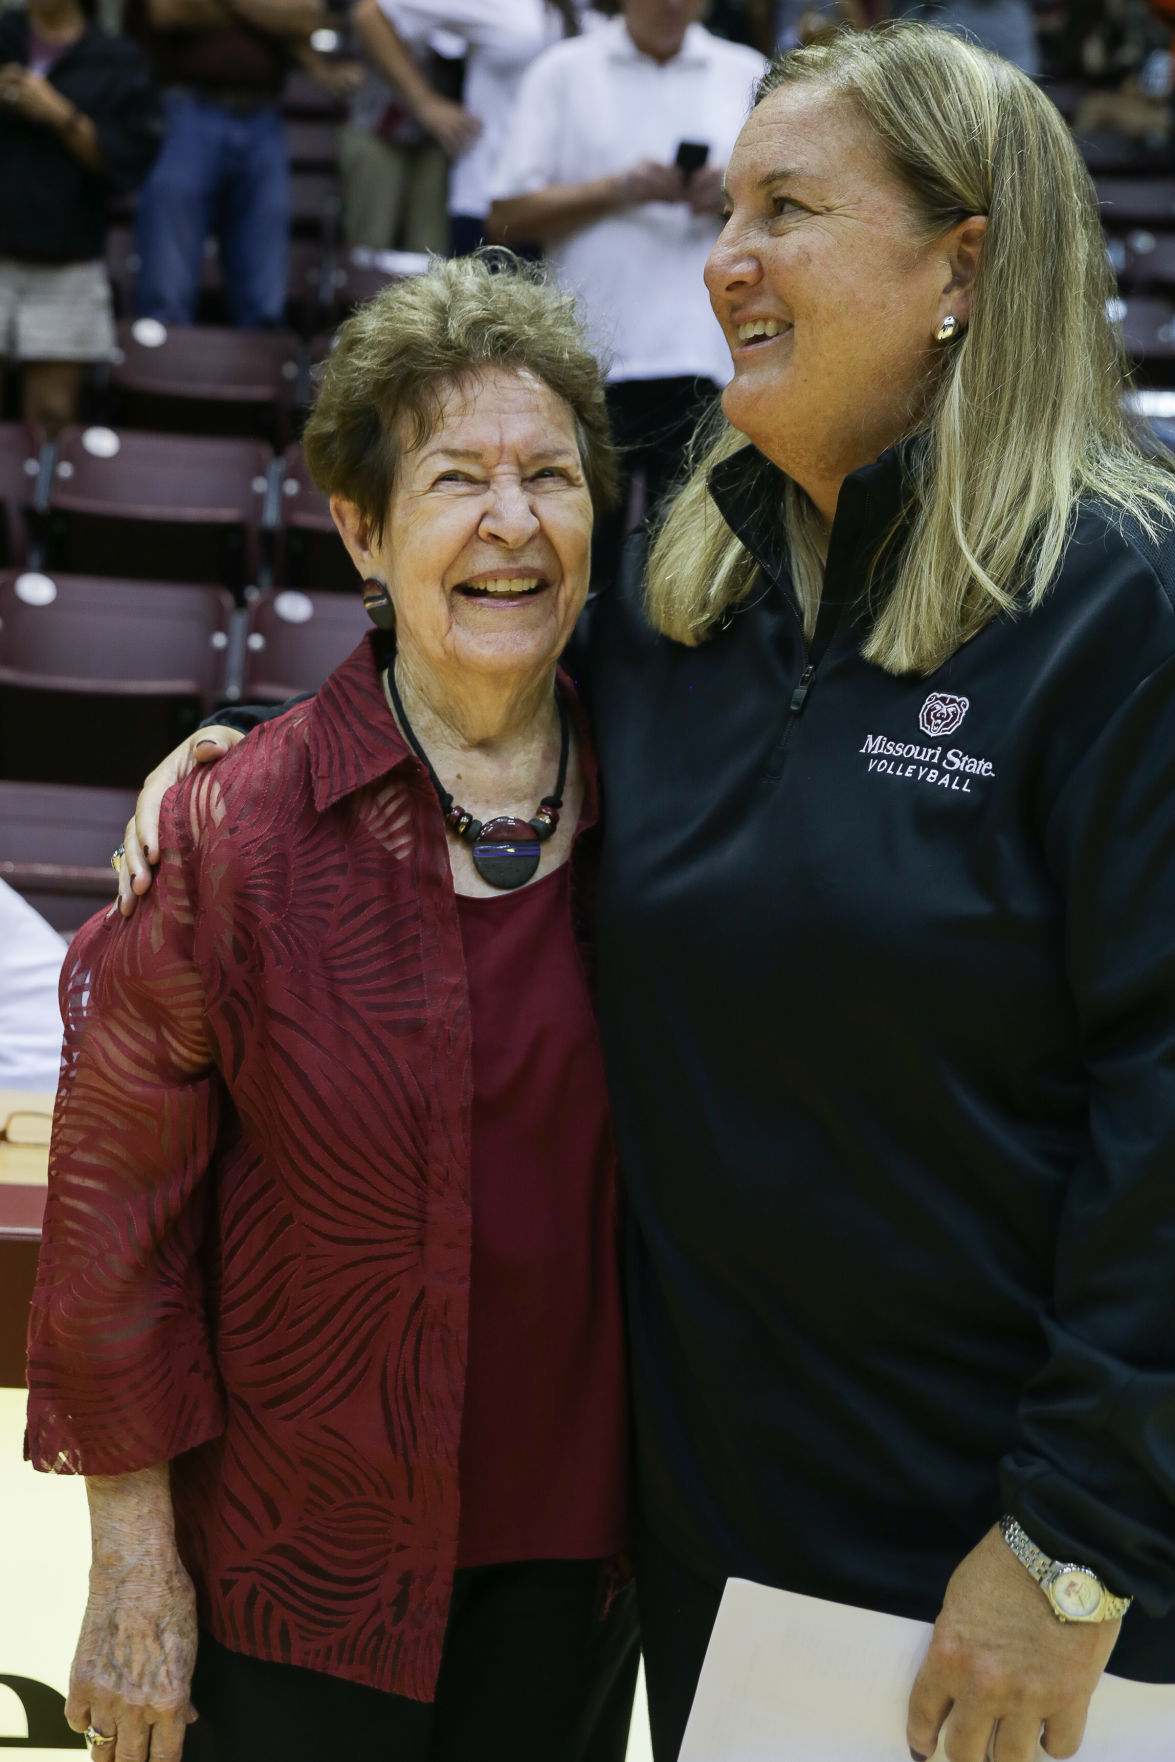 Shore Msu S Lack Of Administrative Structure Showed In Handling Of Legendary Coach Melissa Stokes Sports The Standard Org